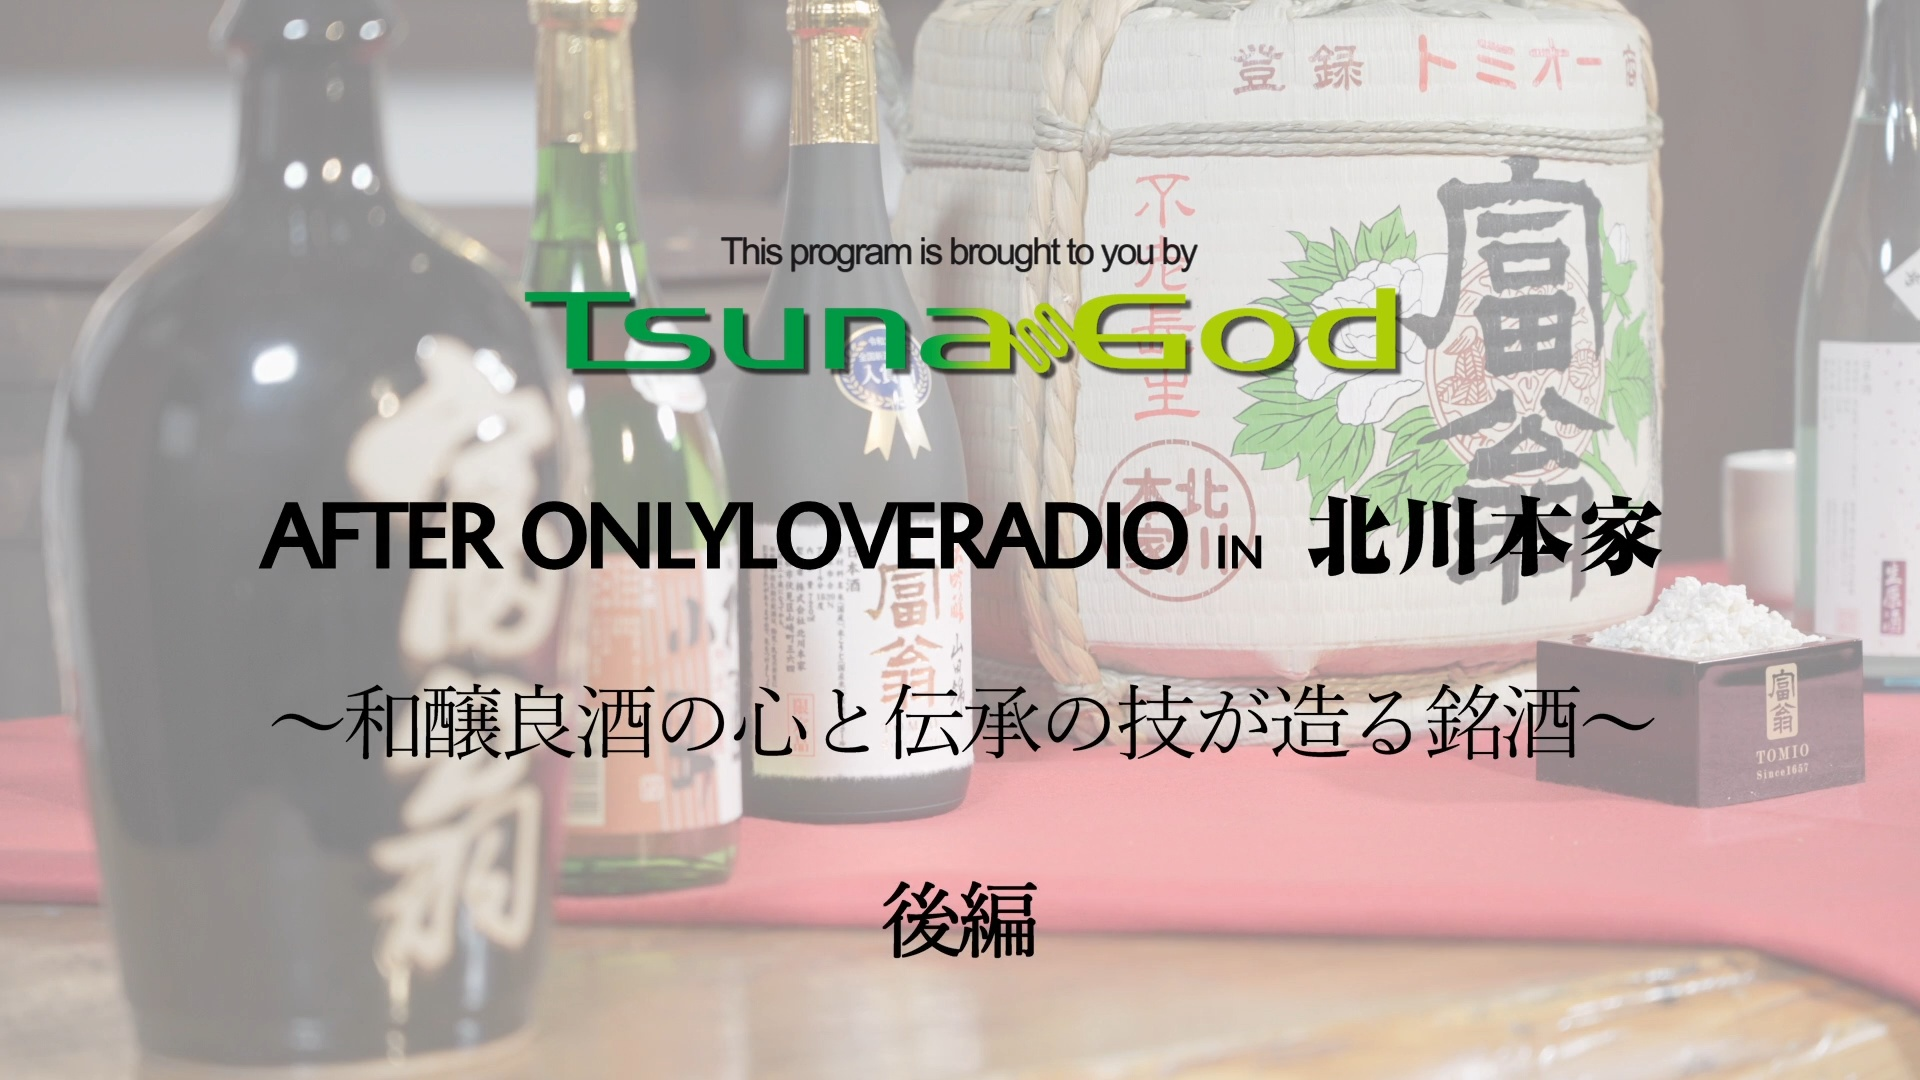 AFTER ONLYLOVERADIO IN 北川本家(後編)